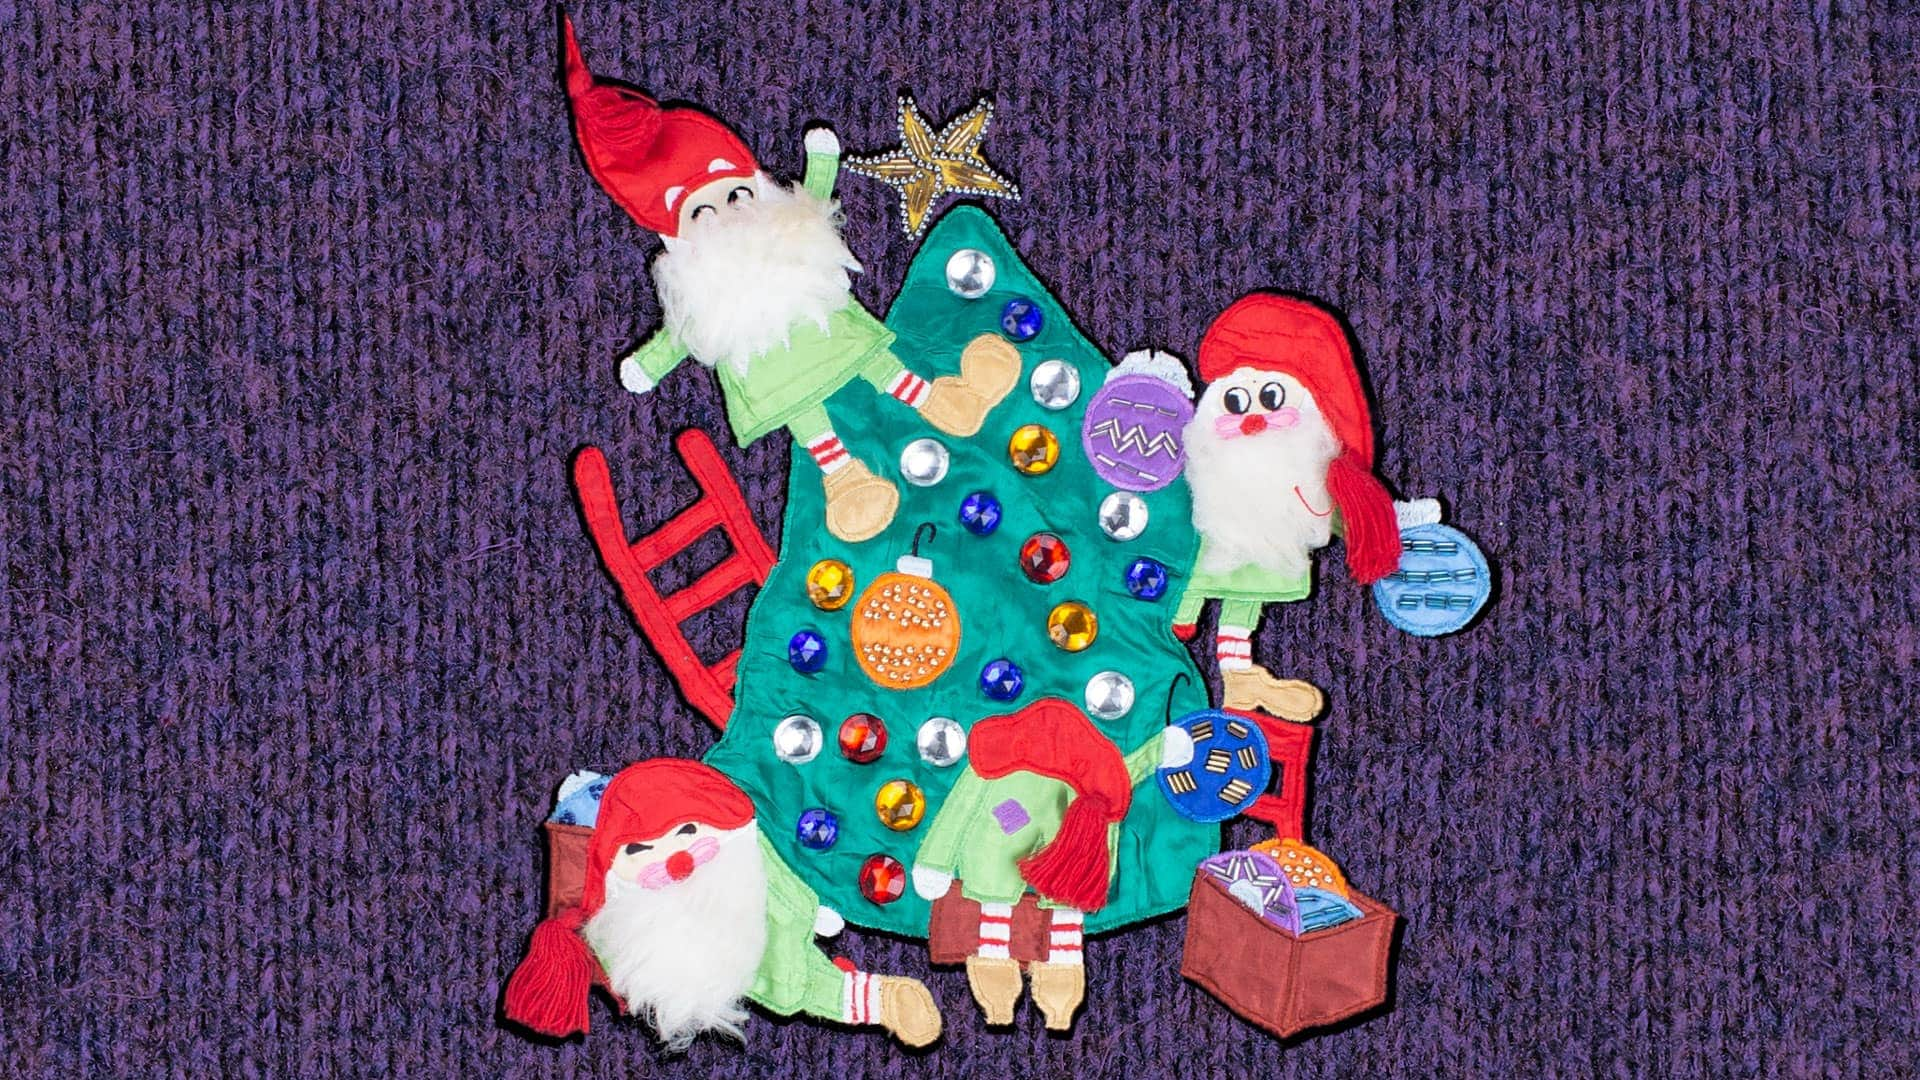 Ugly Christmas sweater featuring a group of elves decorating a Christmas tree. One of the elves is falling over.